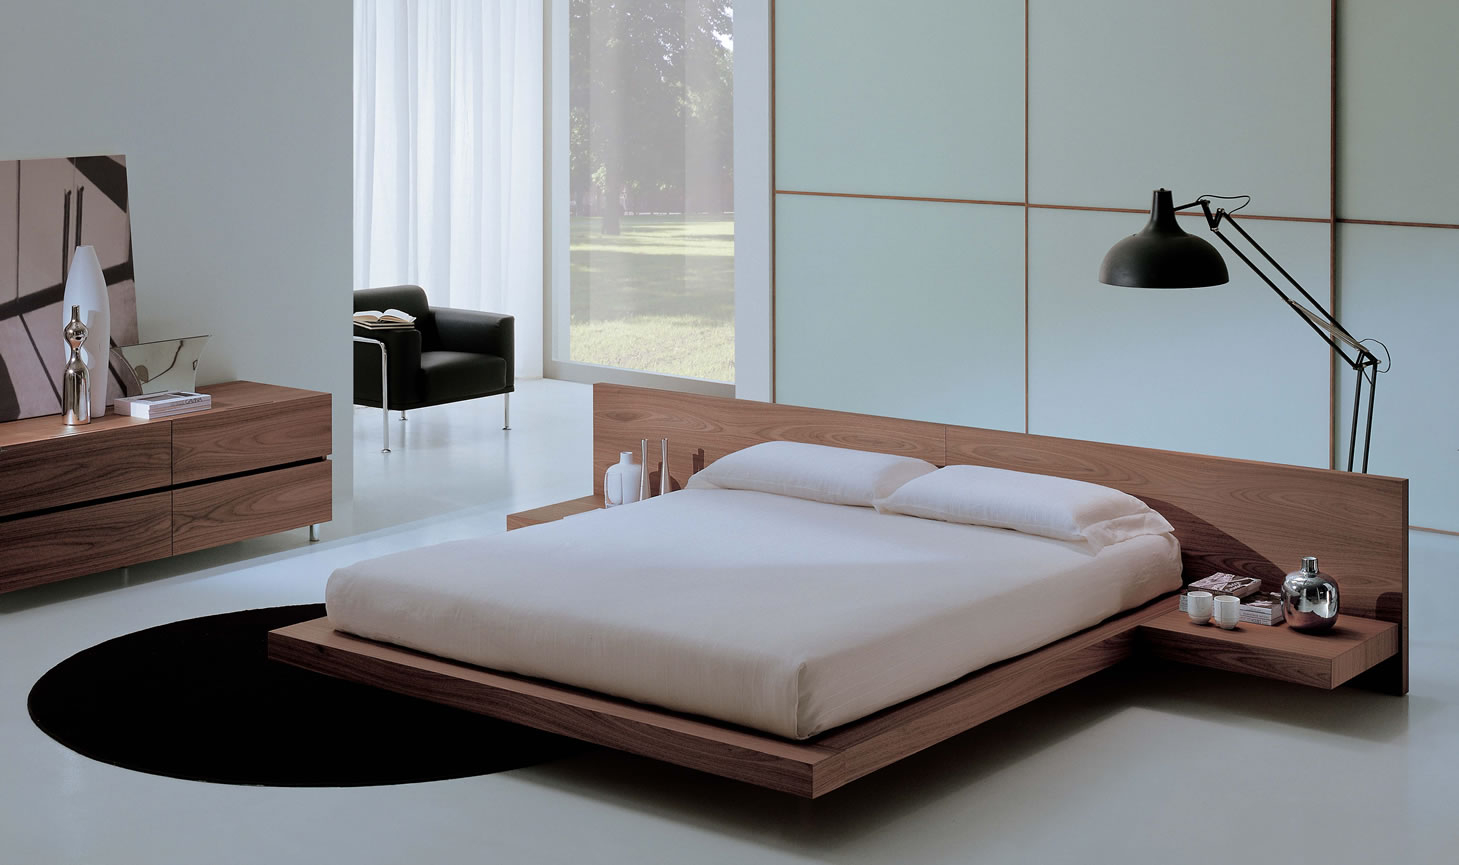 Modern Bedroom Furniture Ideas The New Way Home Decor A Simple for Modern Style Bedroom Sets